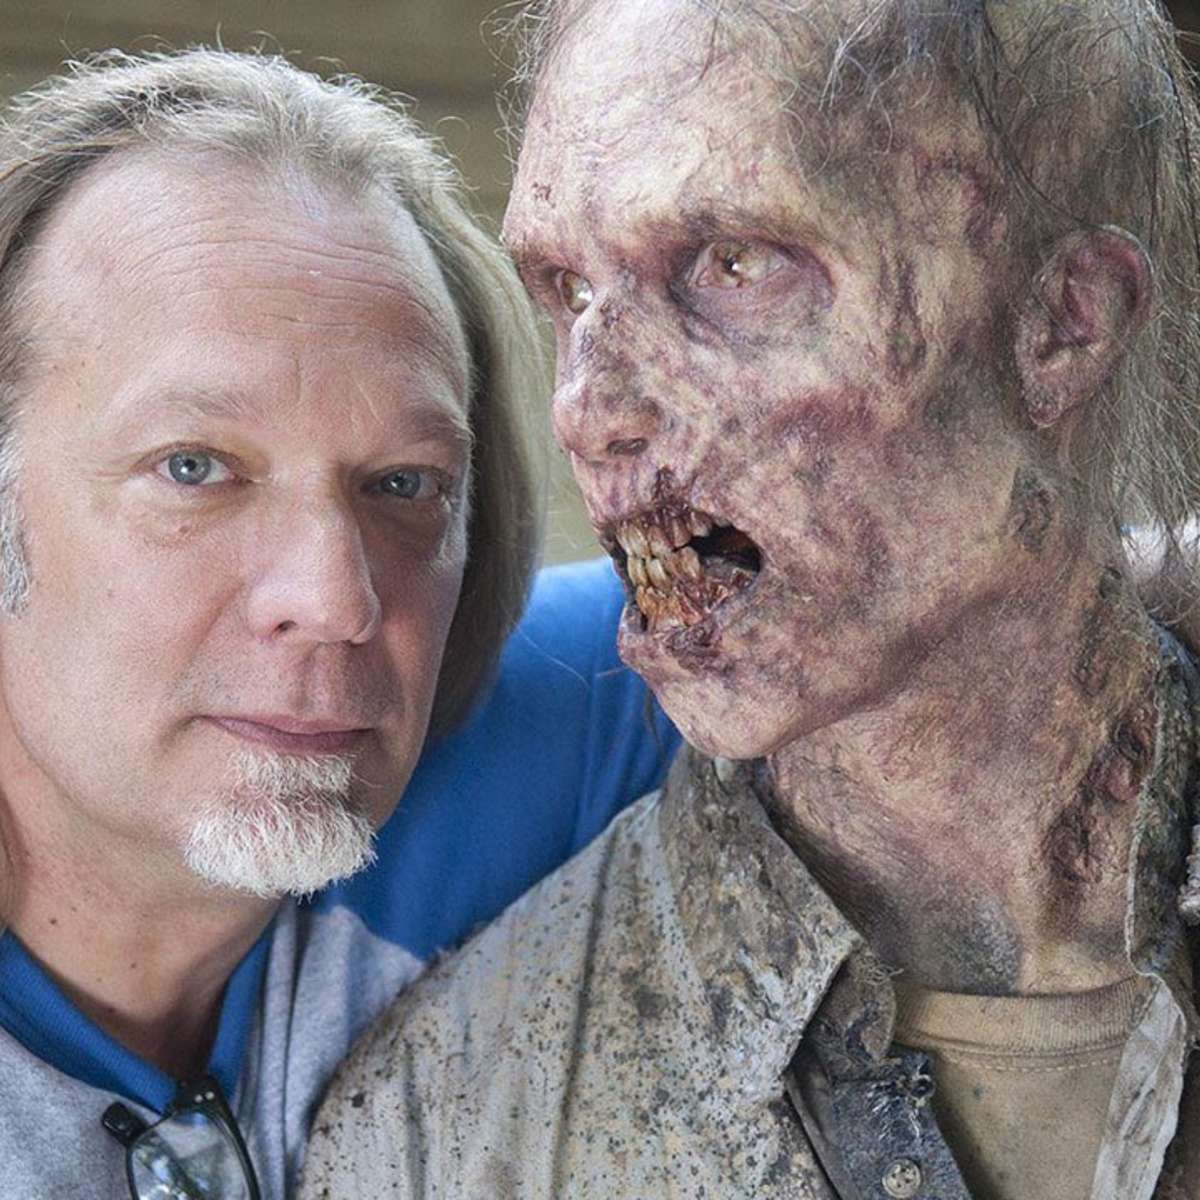 walking_dead_greg_nicotero_hero_01.jpg